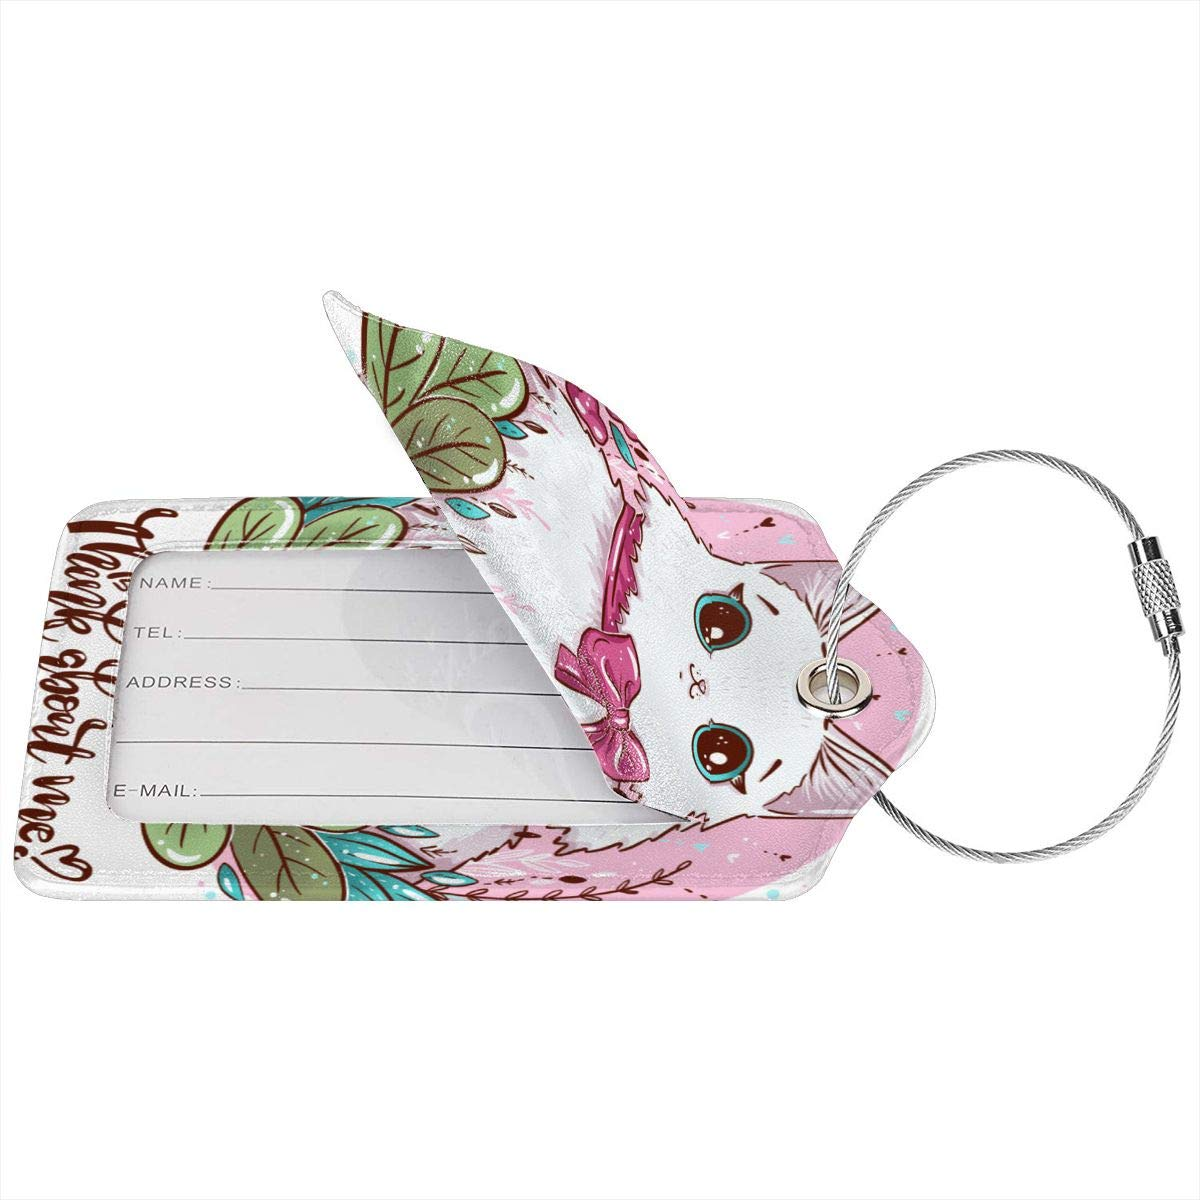 Lucaeat White Cute Cat With Flowers Luggage Tag PU Leather Bag Tag Travel Suitcases ID